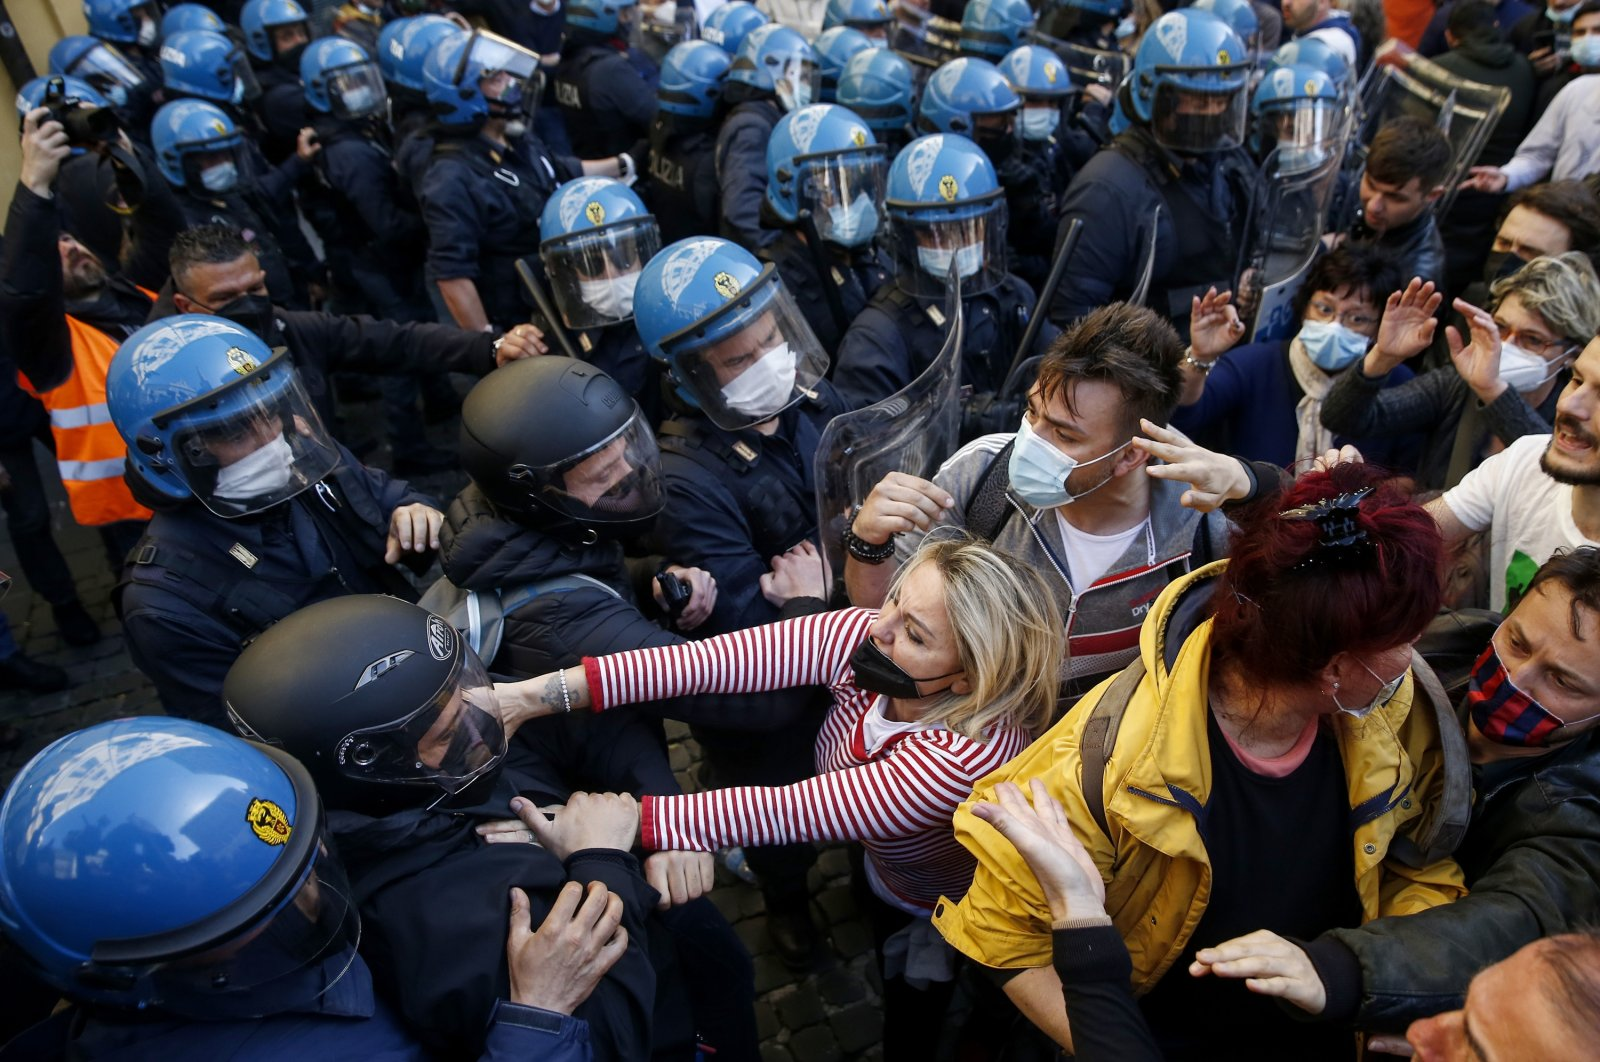 Demonstrators scuffle wit Italian Policemen in riot gear outside the lower Chamber during a protest by restaurant and other business activity owners in Rome, Tuesday, April 6, 2021.  (Lapresse Via AP)